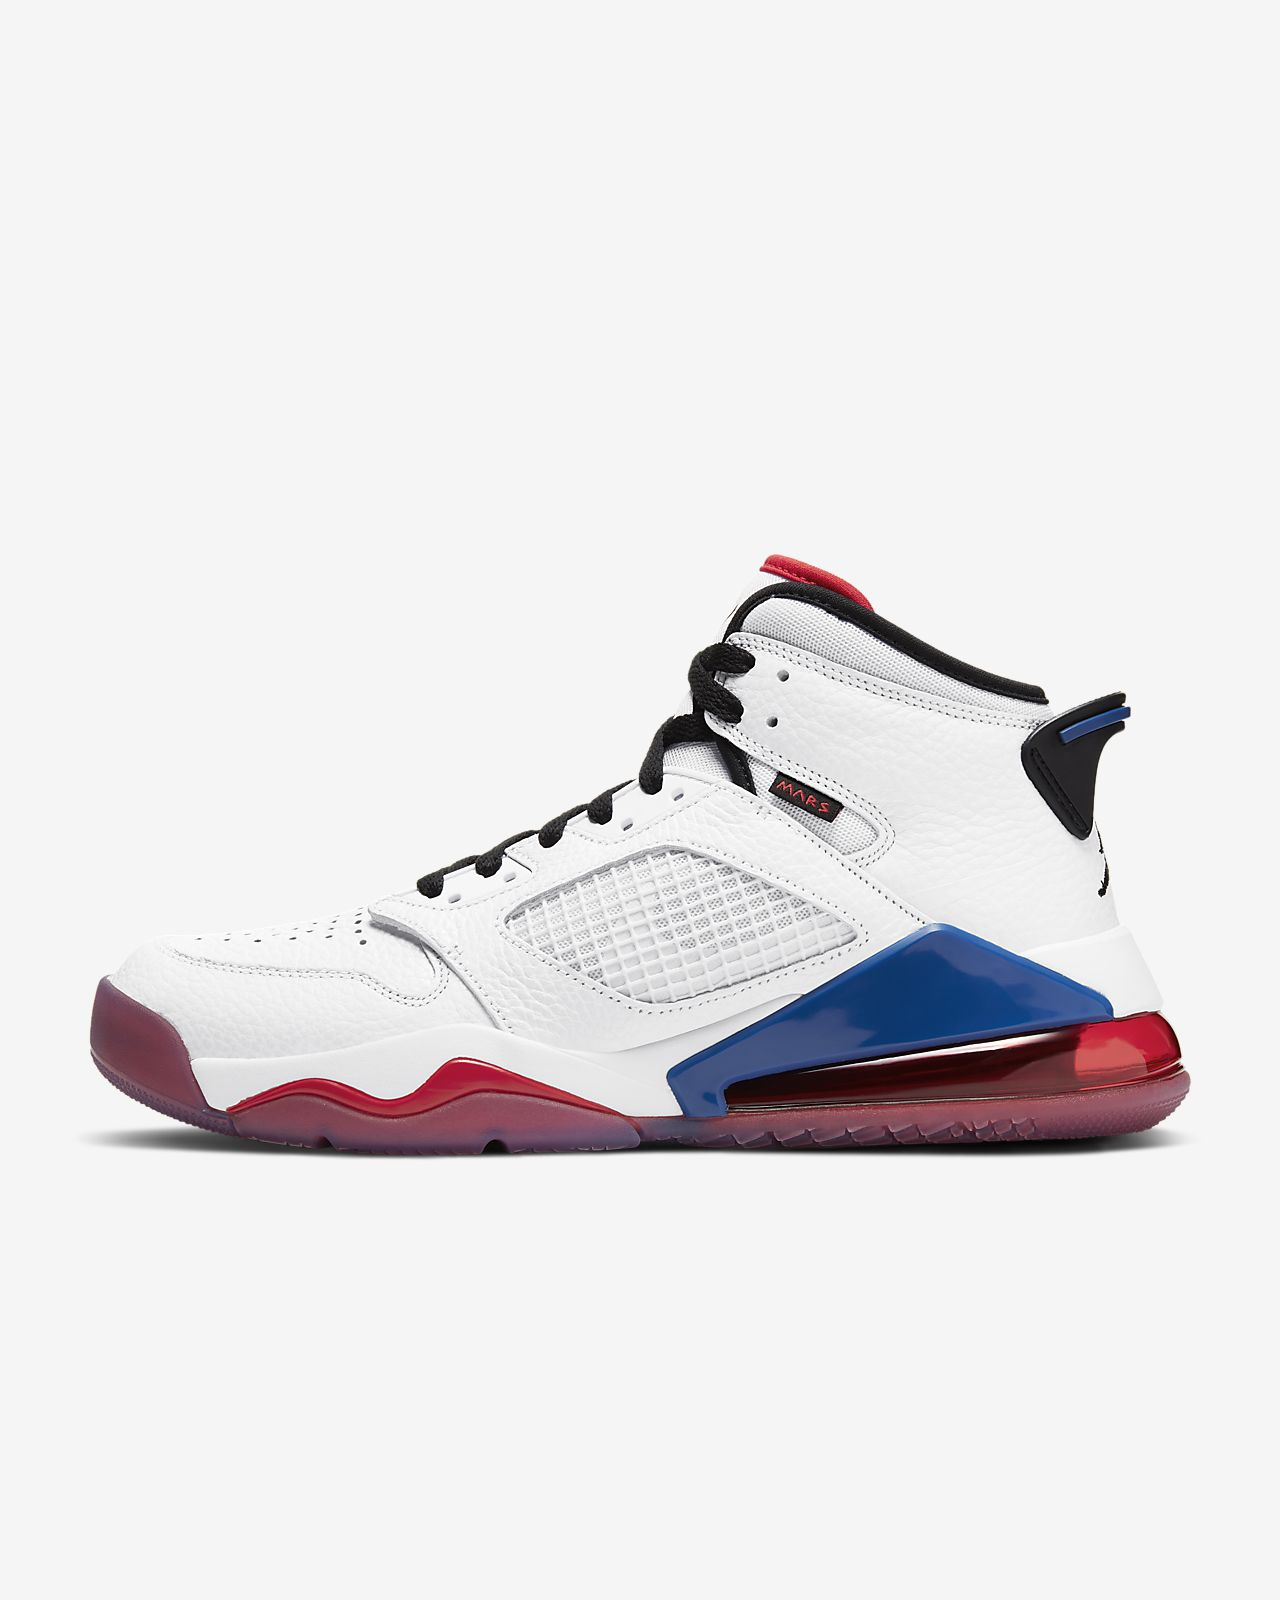 Jordan Uomo Air Jordan Flight 45 Scontati Outlet Italia